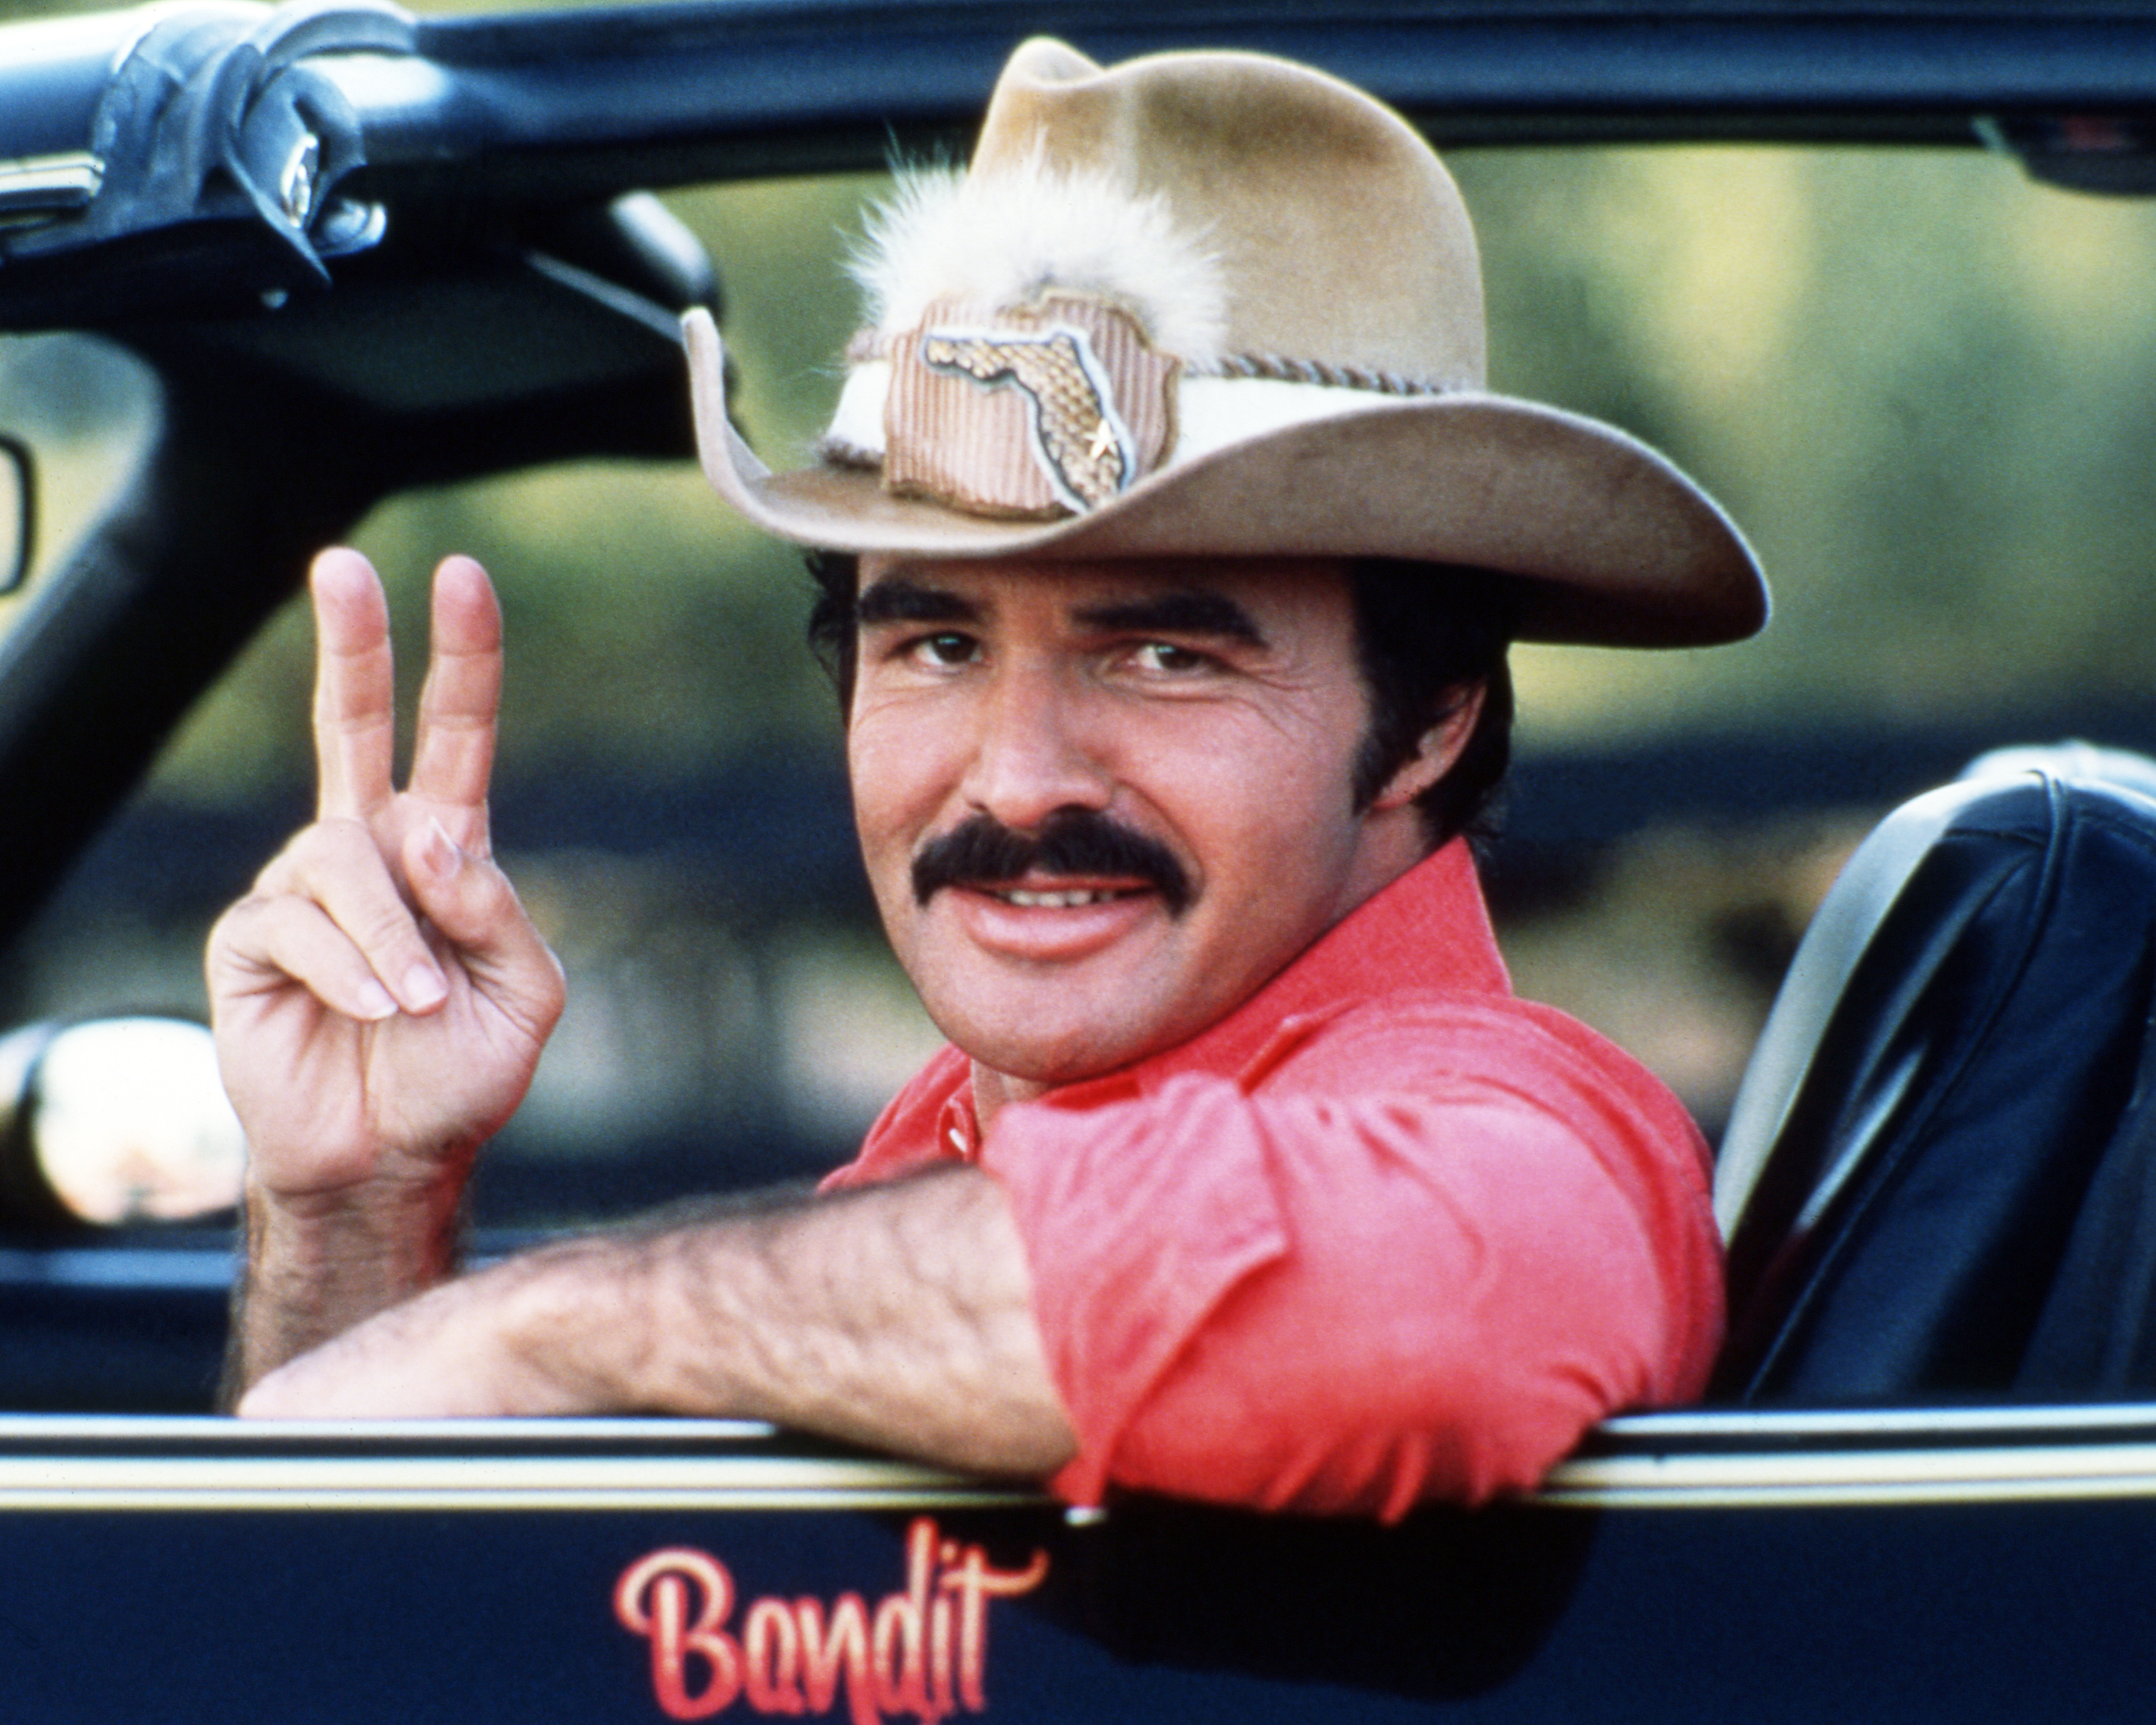 Burt Reynolds as Bo 'Bandit' Darville, in 'Smokey And The Bandit', 1977. (Photo by Silver Screen Collection/Getty Images)